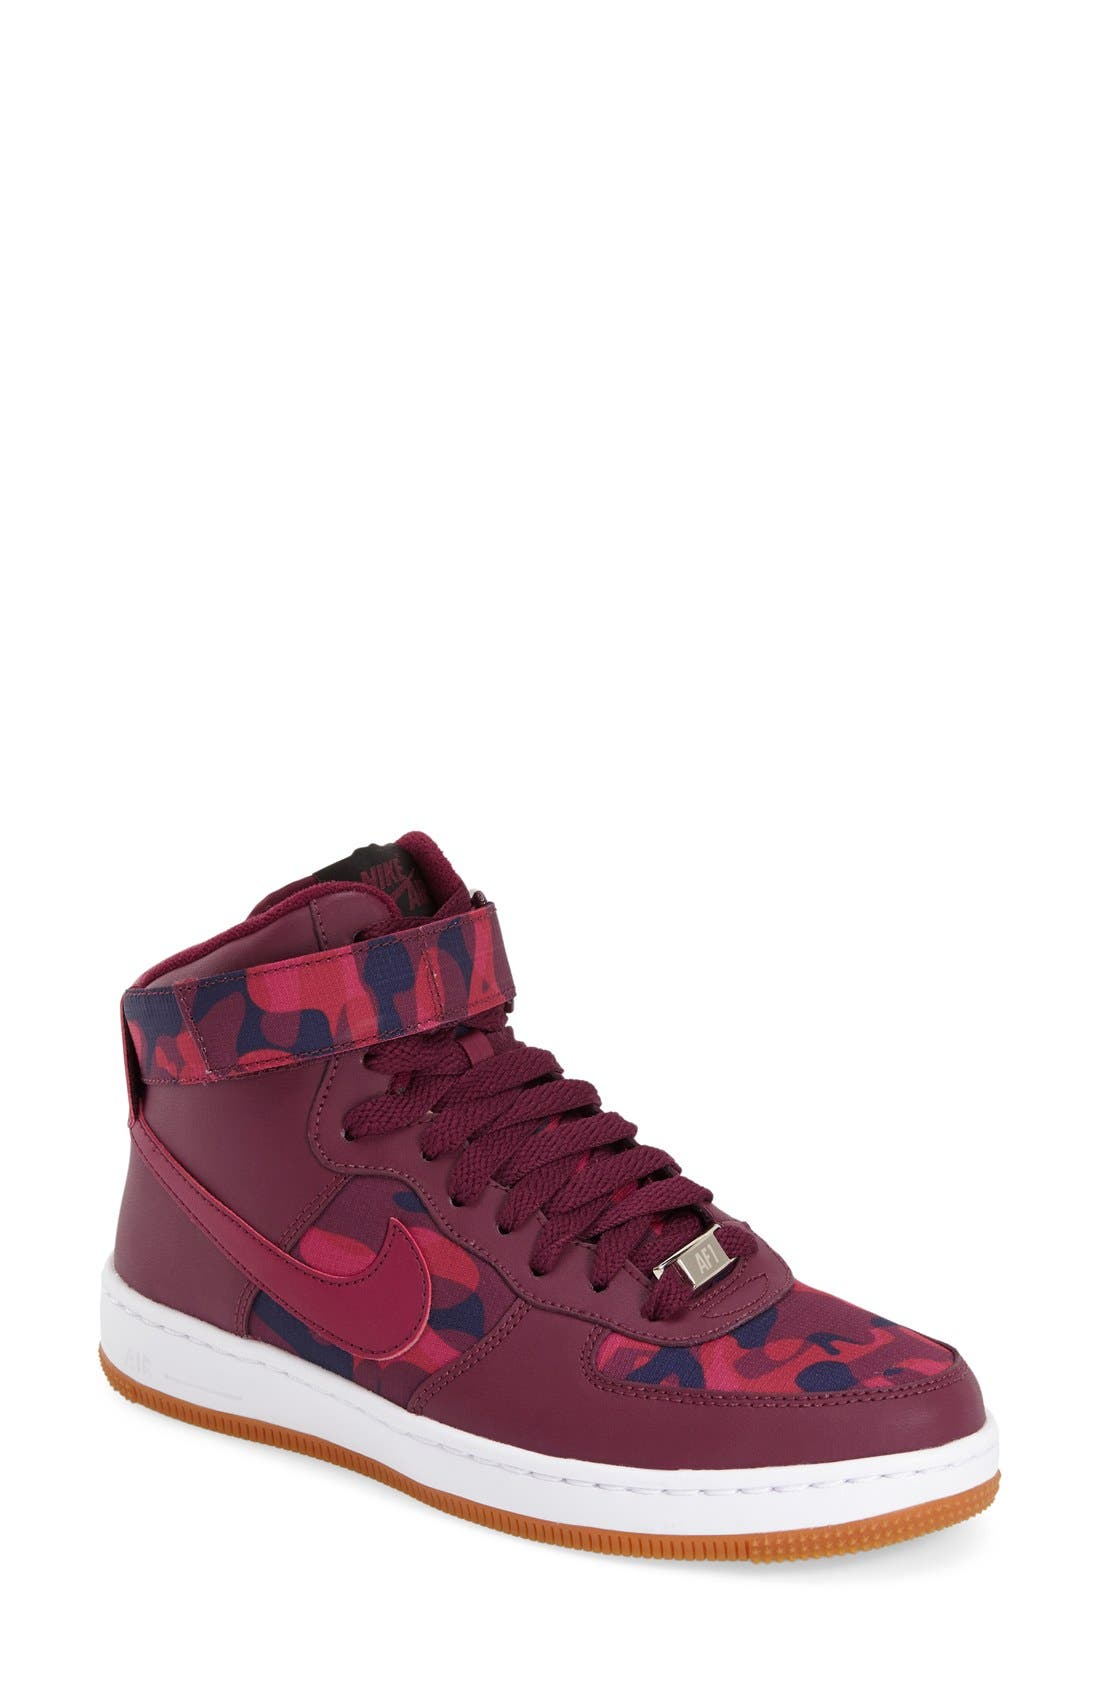 Main Image - Nike 'AF-1 Ultra Force' Sneaker (Women)